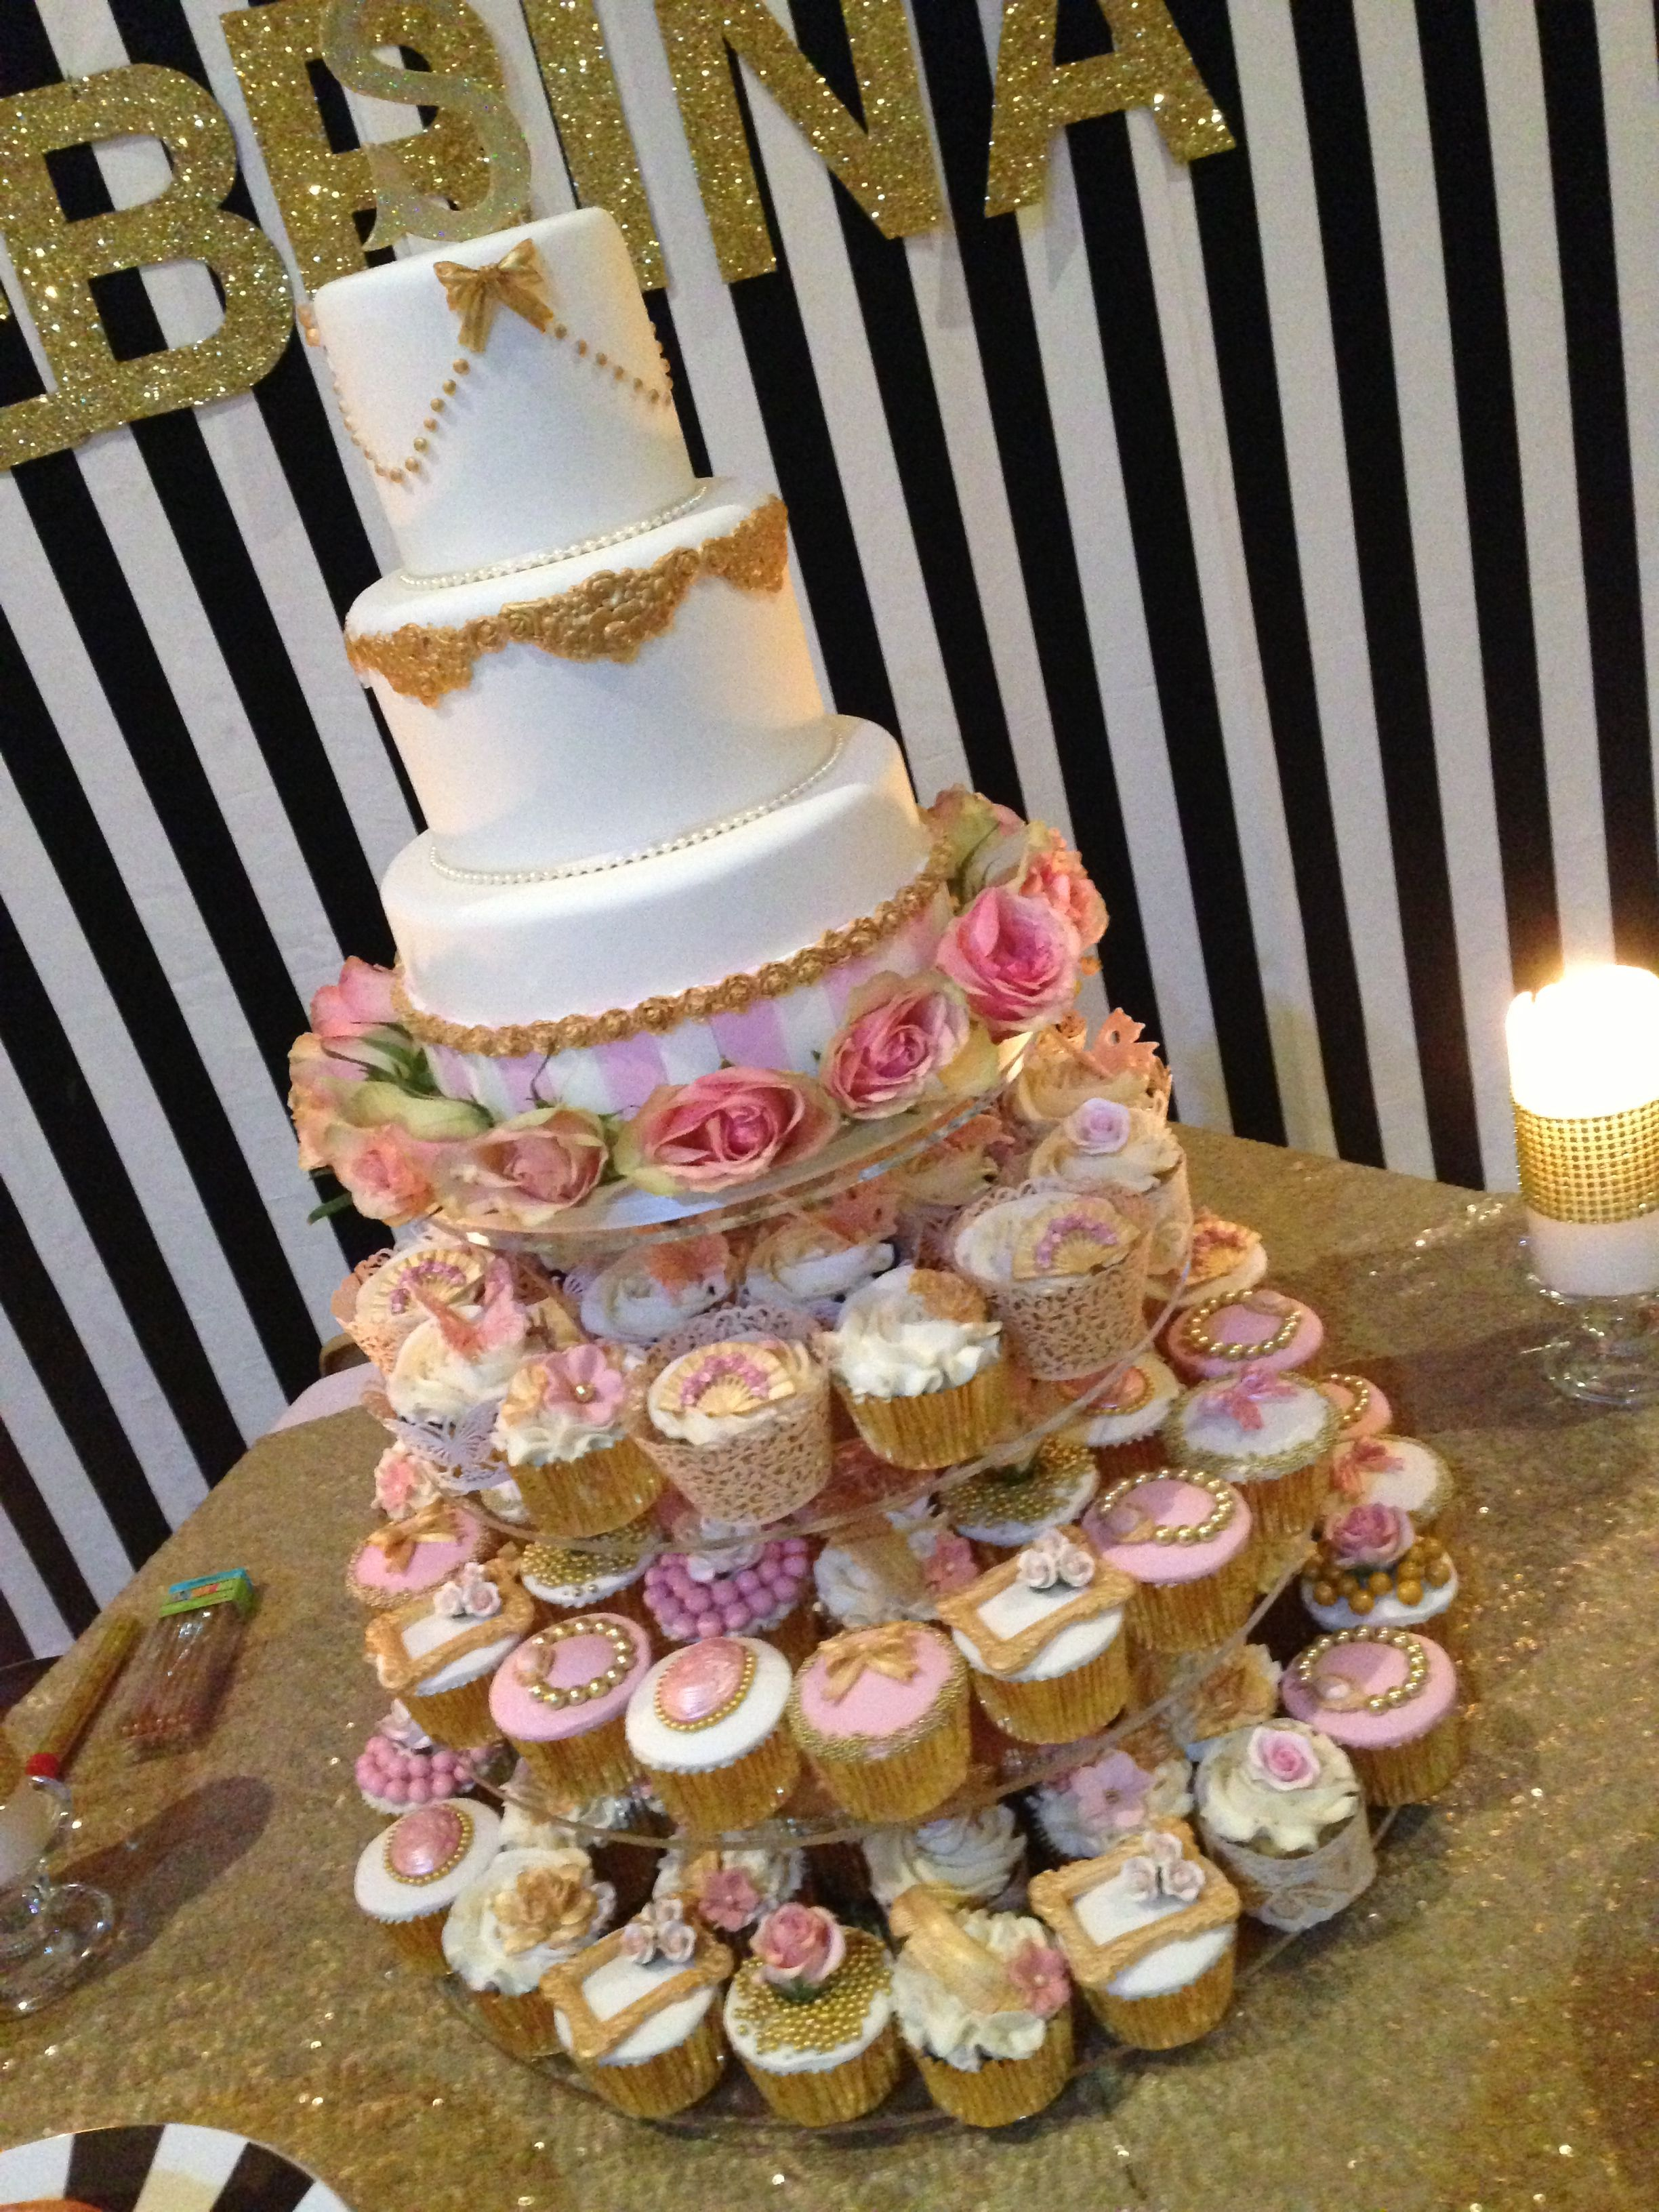 Sweet 16 Birthday Cake And Cupcakes Themed Colors Of Gold Ivory